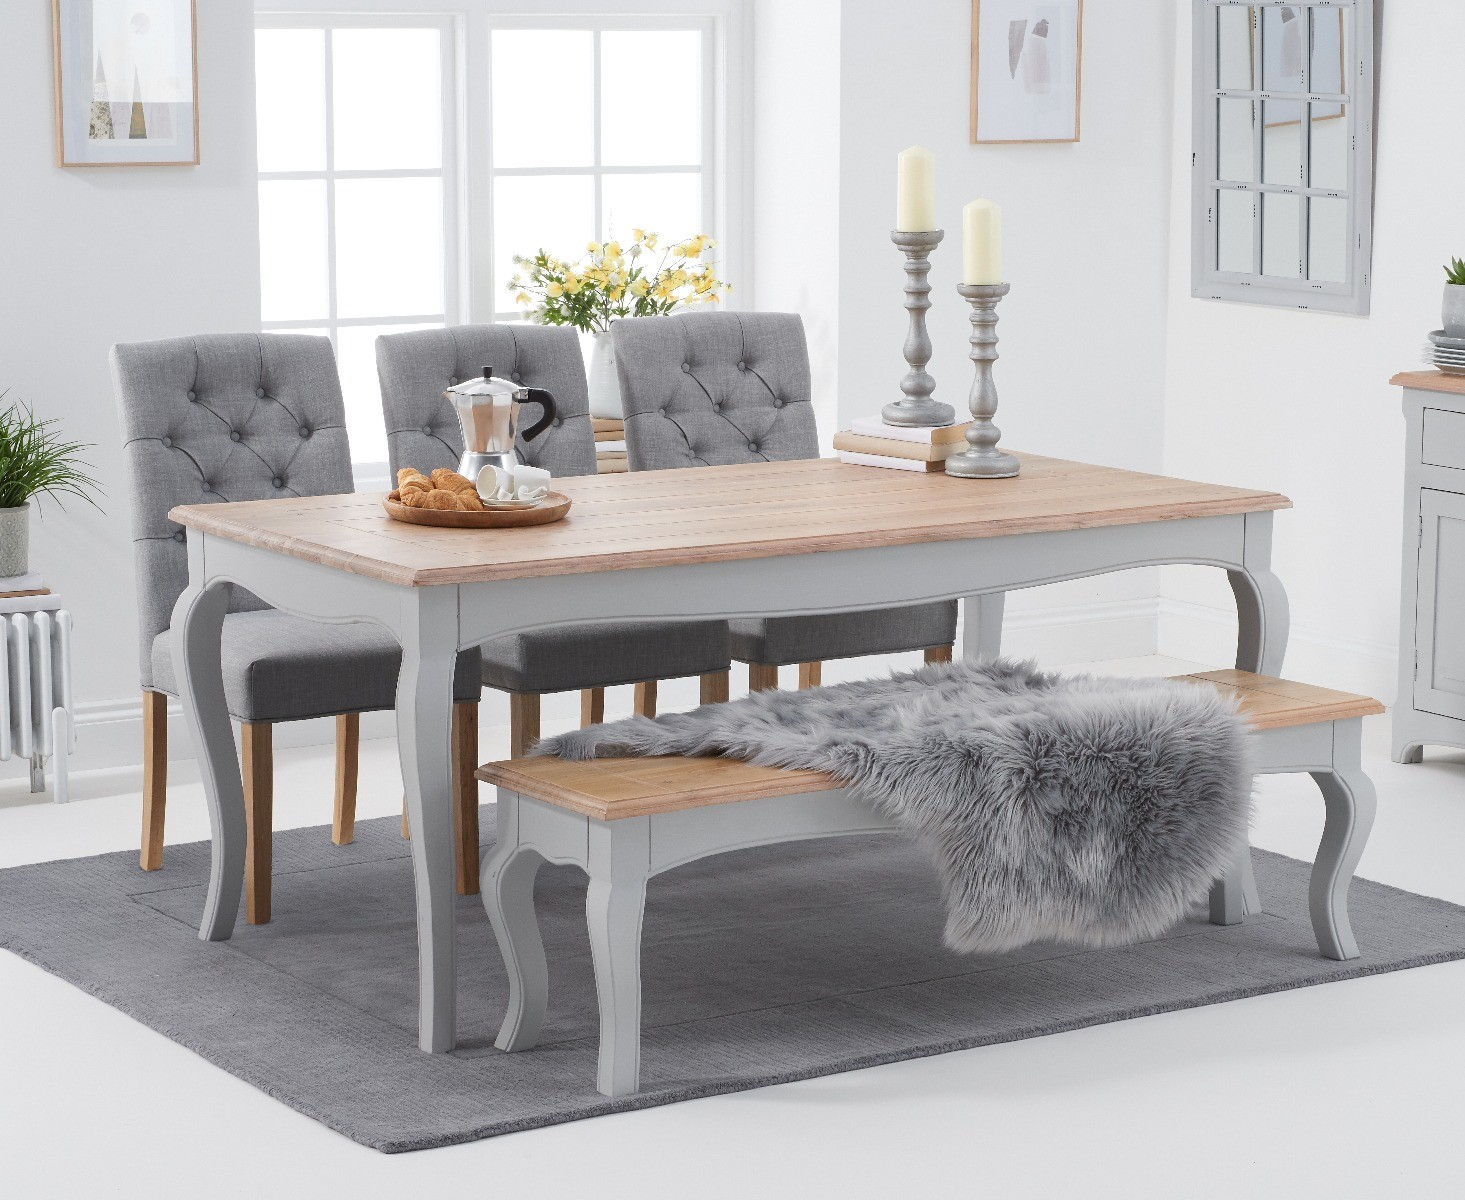 Picture of: Parisian 175cm Grey Shabby Chic Dining Table With Claudia Fabric Chairs And Benches